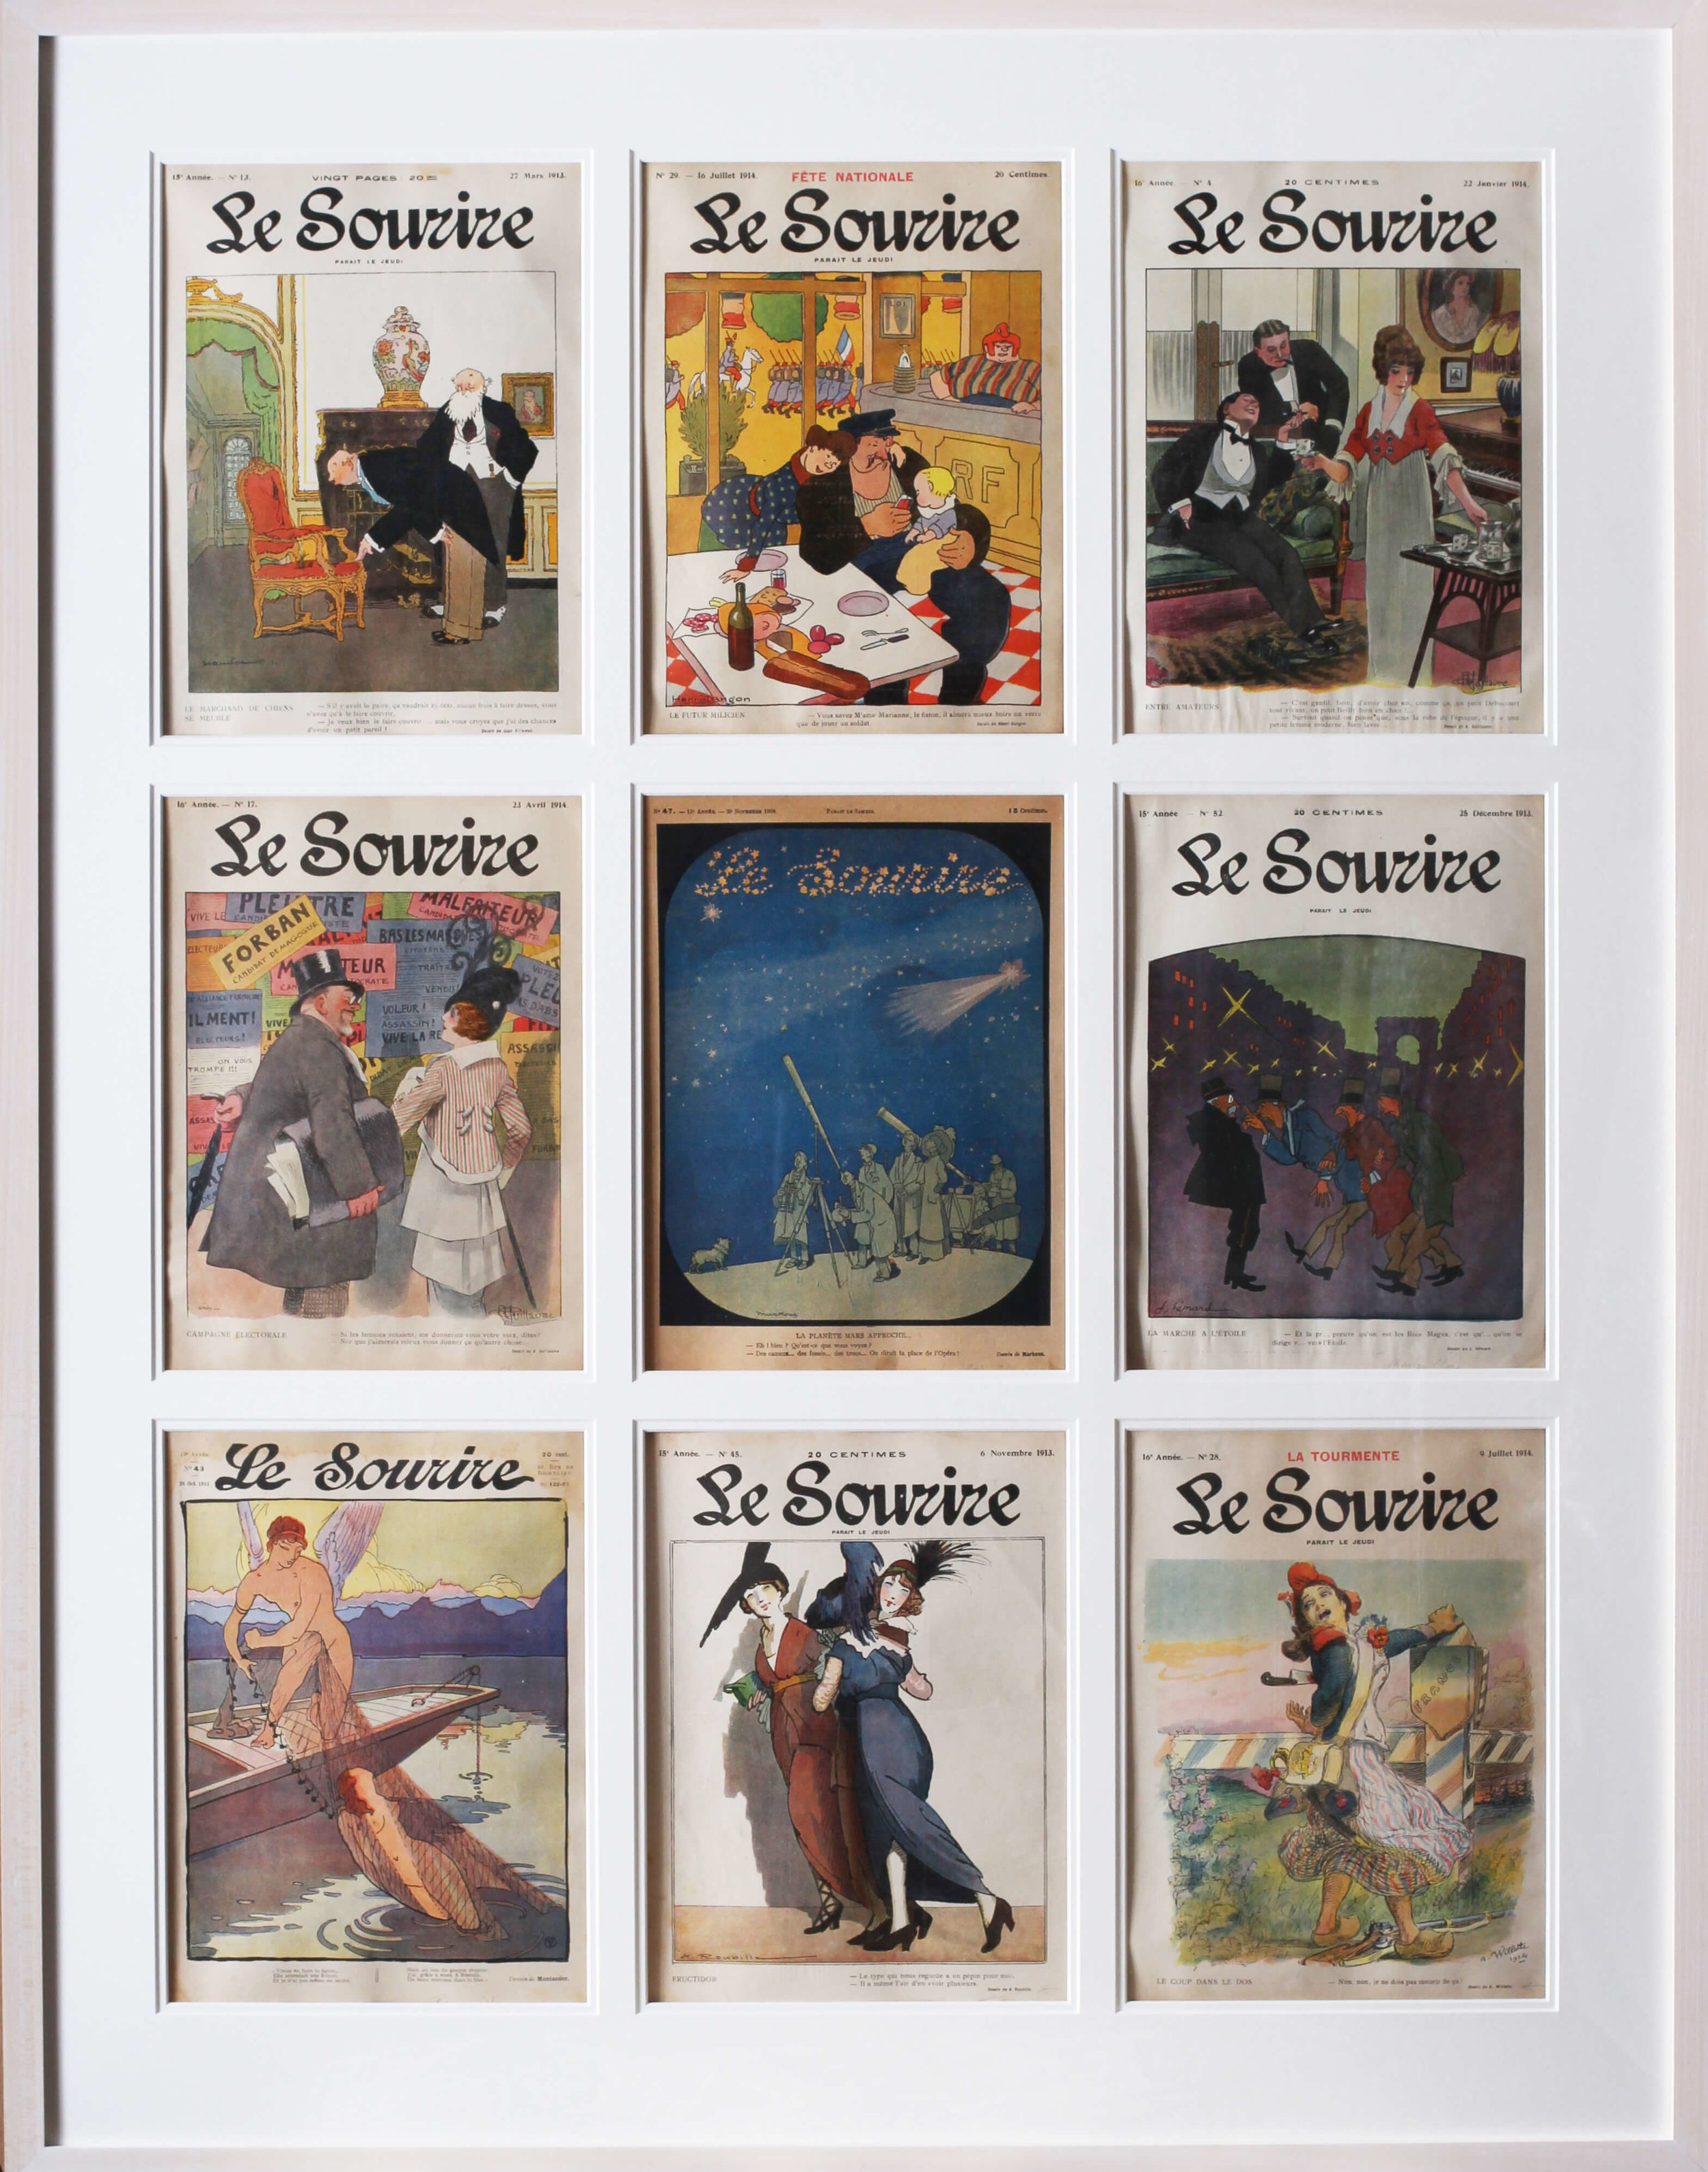 SET OF 9 ORIGINAL MAGAZINE COVERS FOR THE FRENCH BELLE EPOQUE PUBLICATION 'LE SOURIRE'  THESE ARE FROM 1909– 1914 EDITION  114.3 X 89.2CM. (INCLUDING FRAME)  THERE IS A LITTLE BIT OF WATER STAINING TO THE UPPER LEFT AND THERE IS SLIGHT DIRT, OVERALL THE COLOURS ARE EXTREMELY STRONG.  THE PAPER REMAINS IN A SLIGHTLY FADED BUT AUTHENTIC STATE.   PRICE: £2000